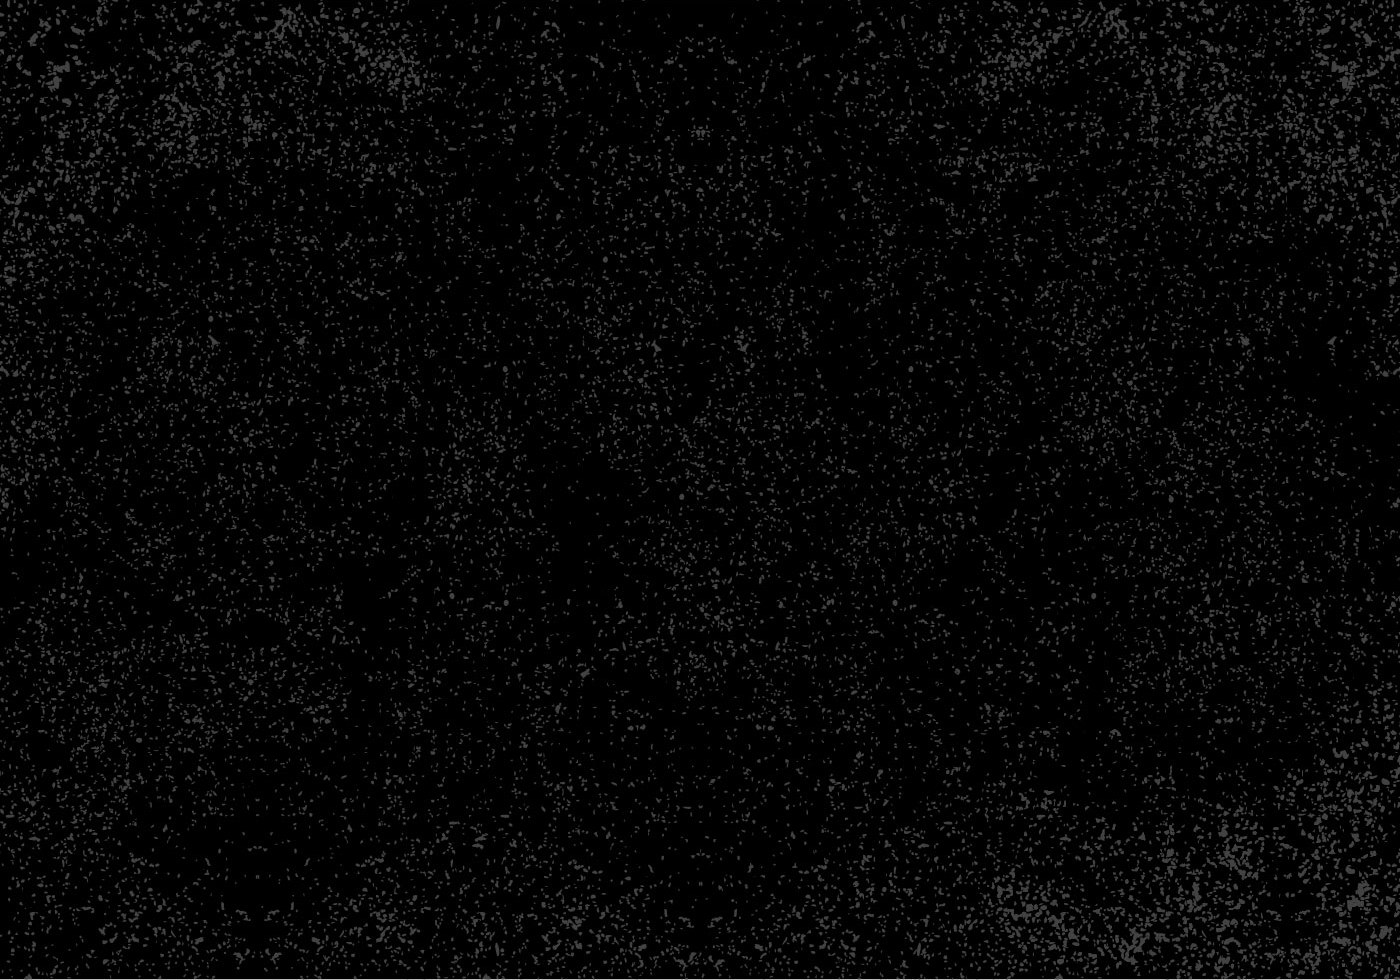 Abstract Free Old Black Surface Vector Texture - Download